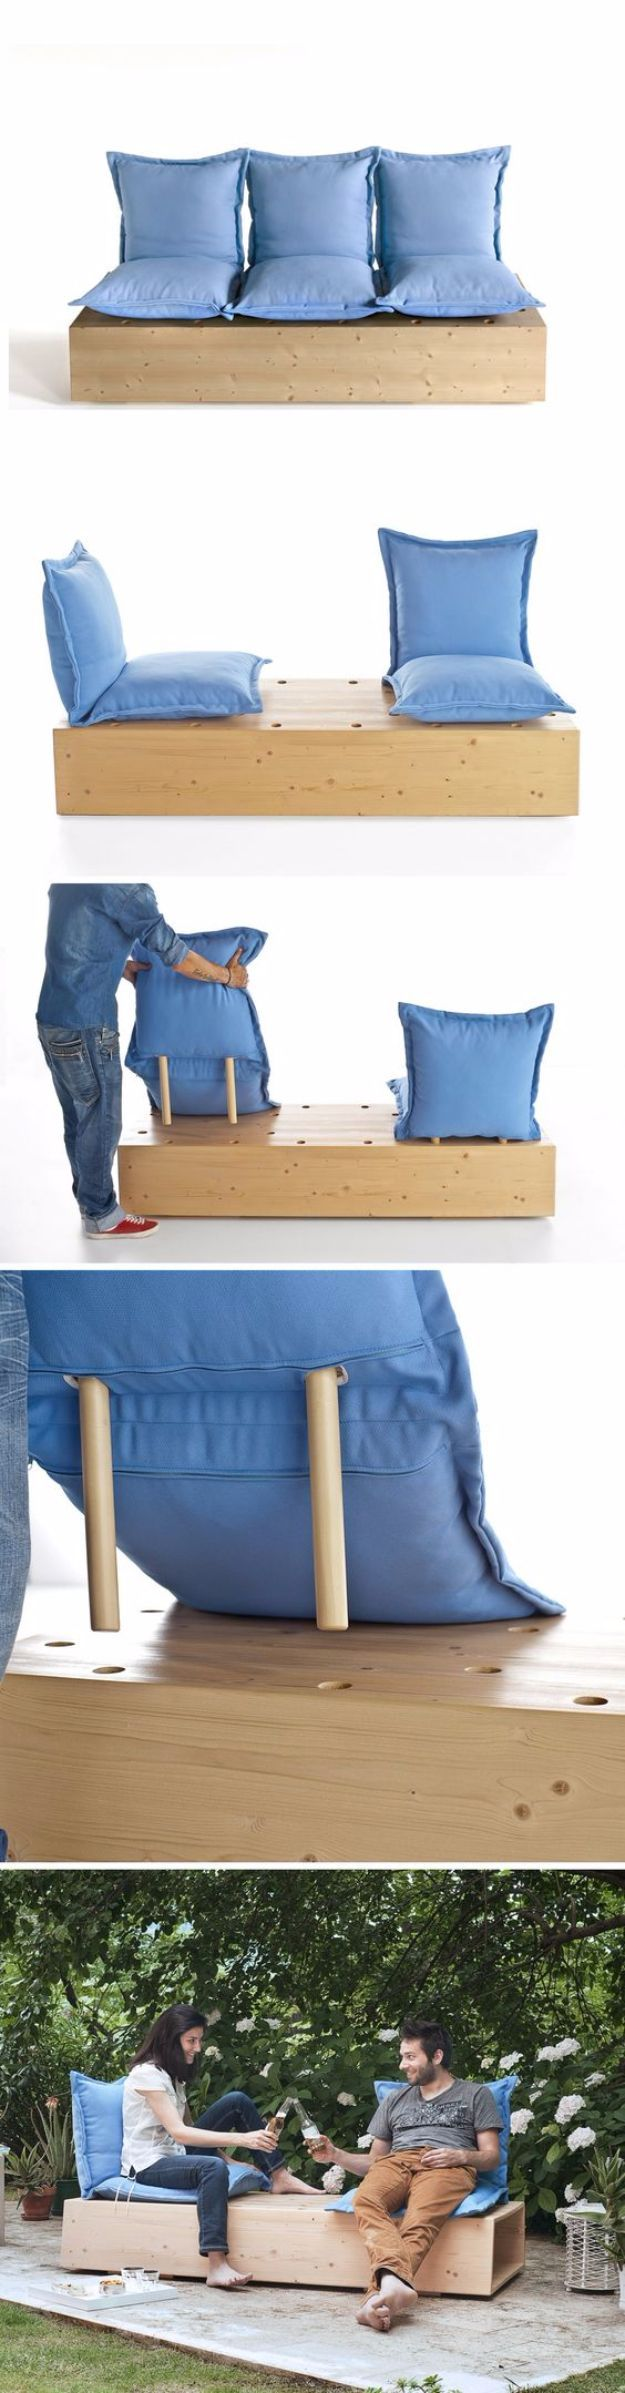 DIY Sofas and Couches - Sectional Garden Sofa - Easy and Creative Furniture and Home Decor Ideas - Make Your Own Sofa or Couch on A Budget - Makeover Your Current Couch With Slipcovers, Painting and More. Step by Step Tutorials and Instructions http://diyjoy.com/diy-sofas-couches